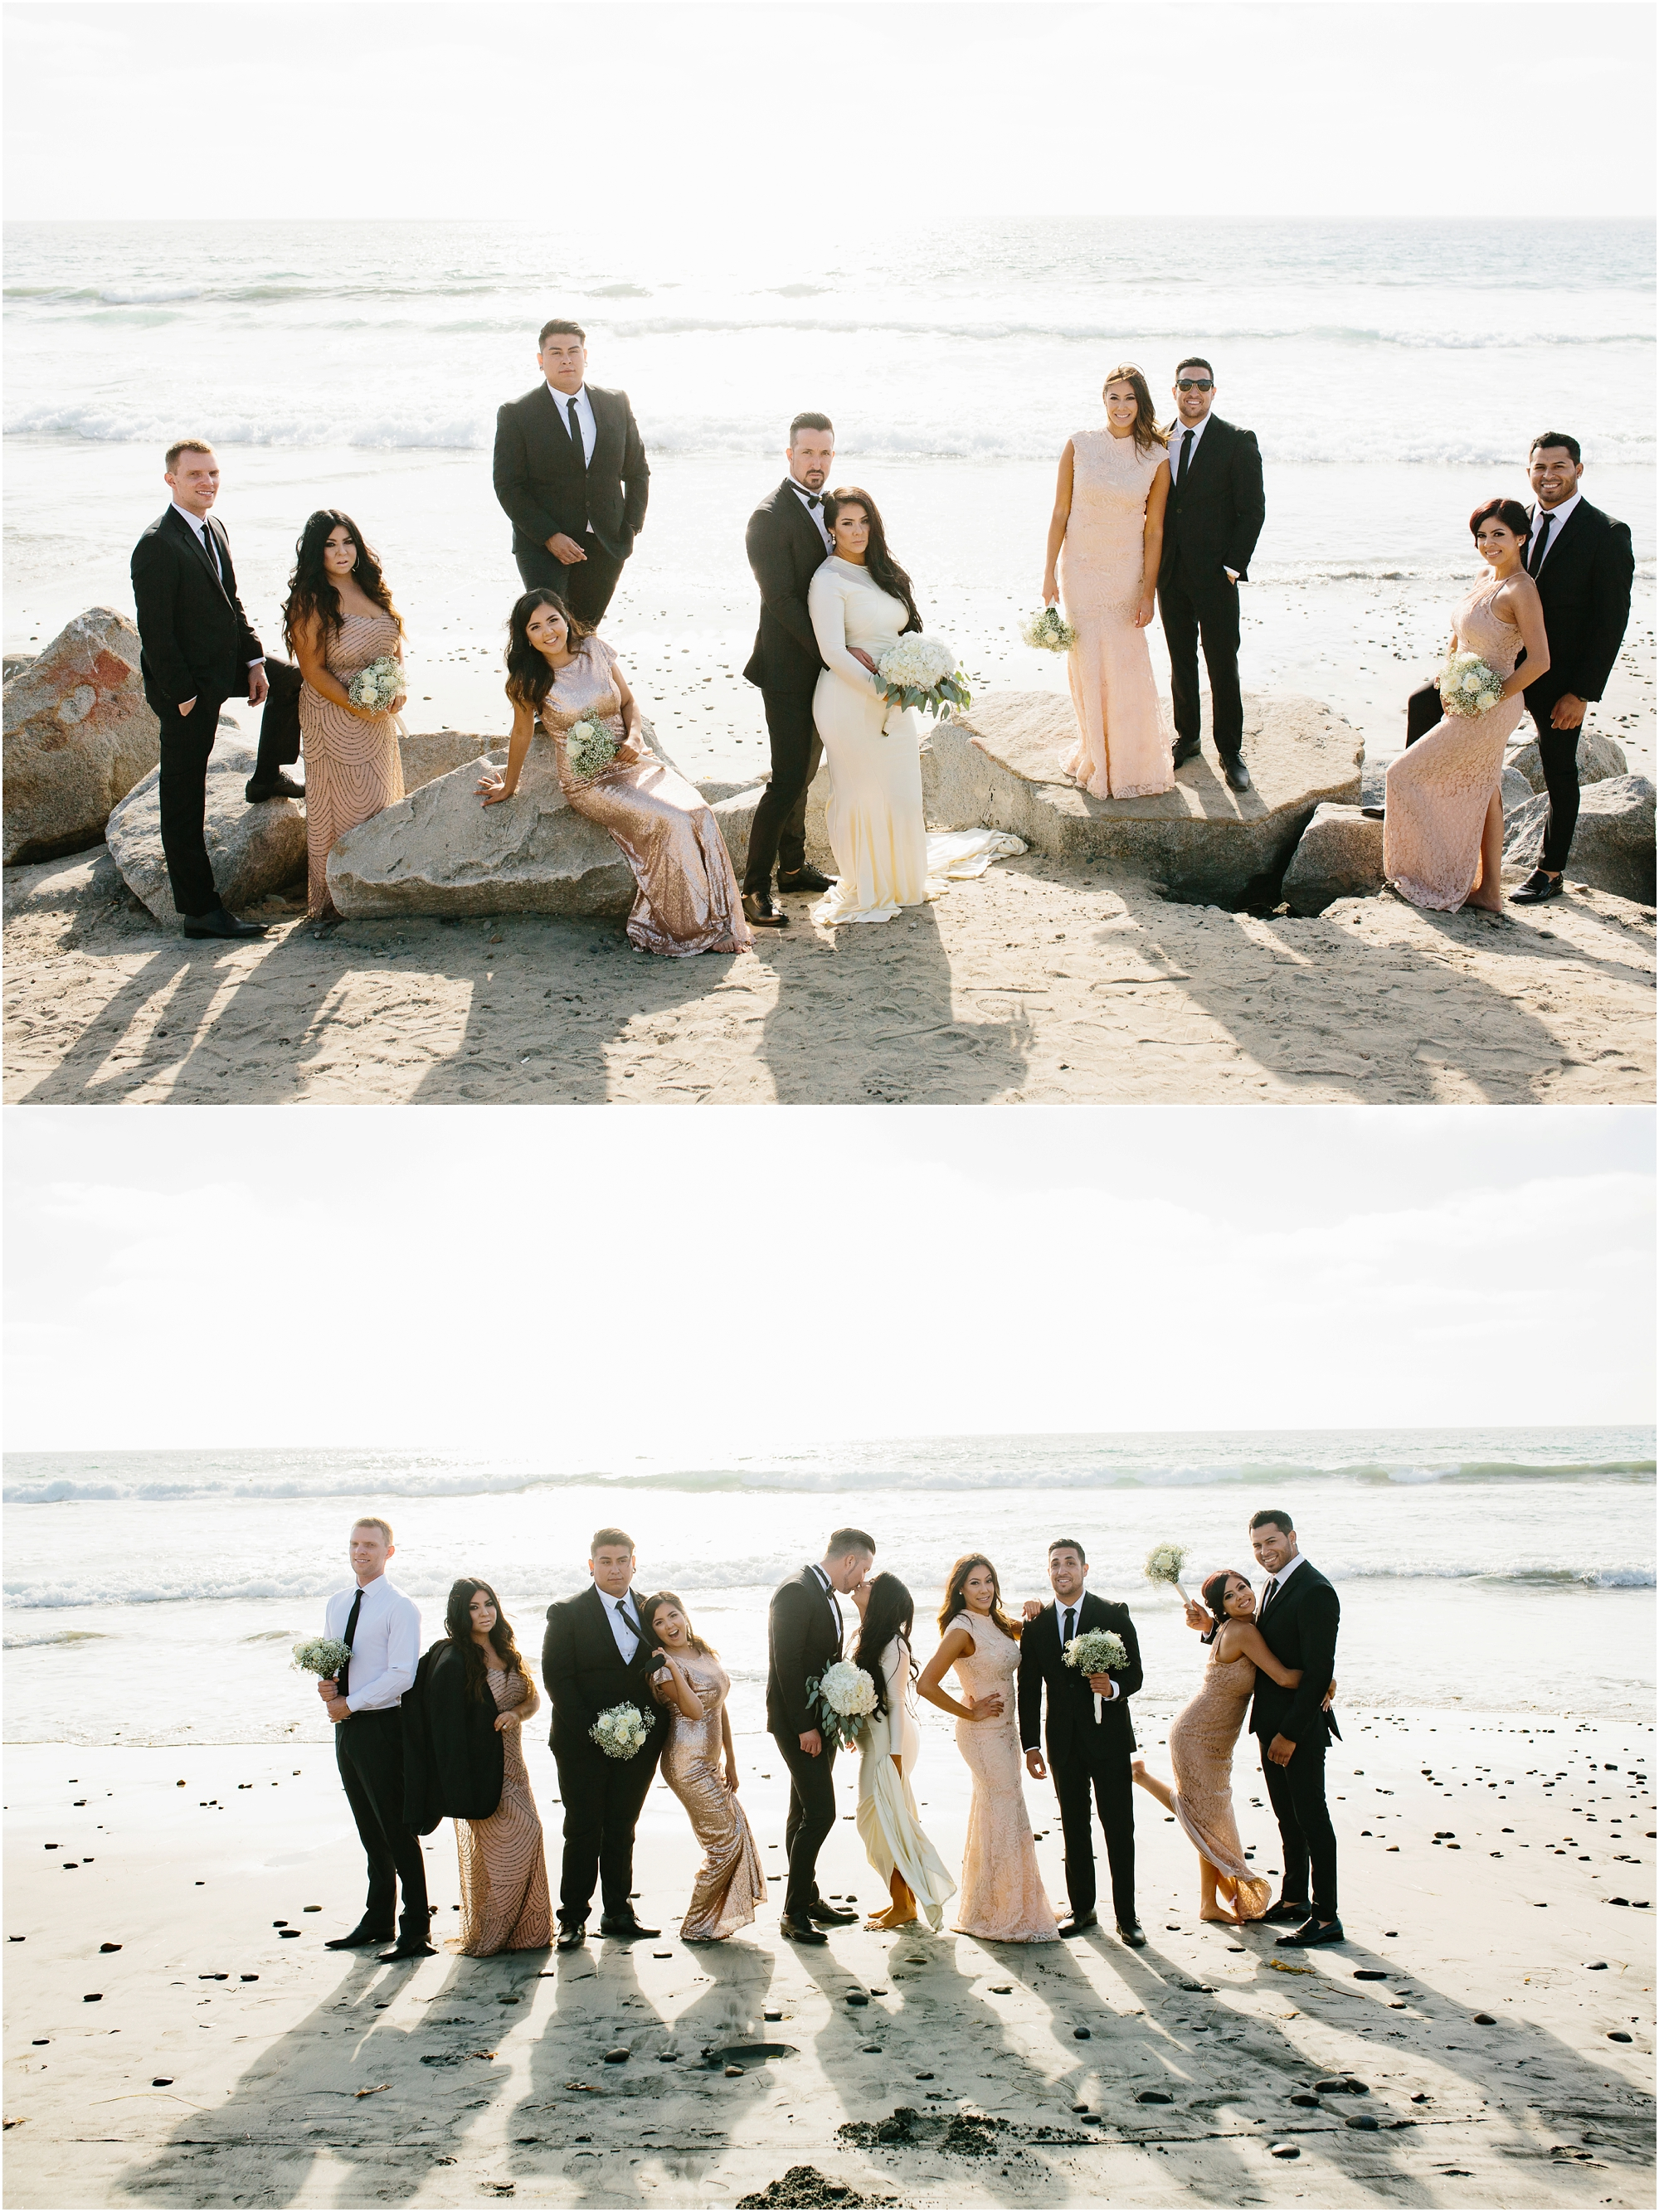 Beach Bridal Party Photos - https://brittneyhannonphotography.com